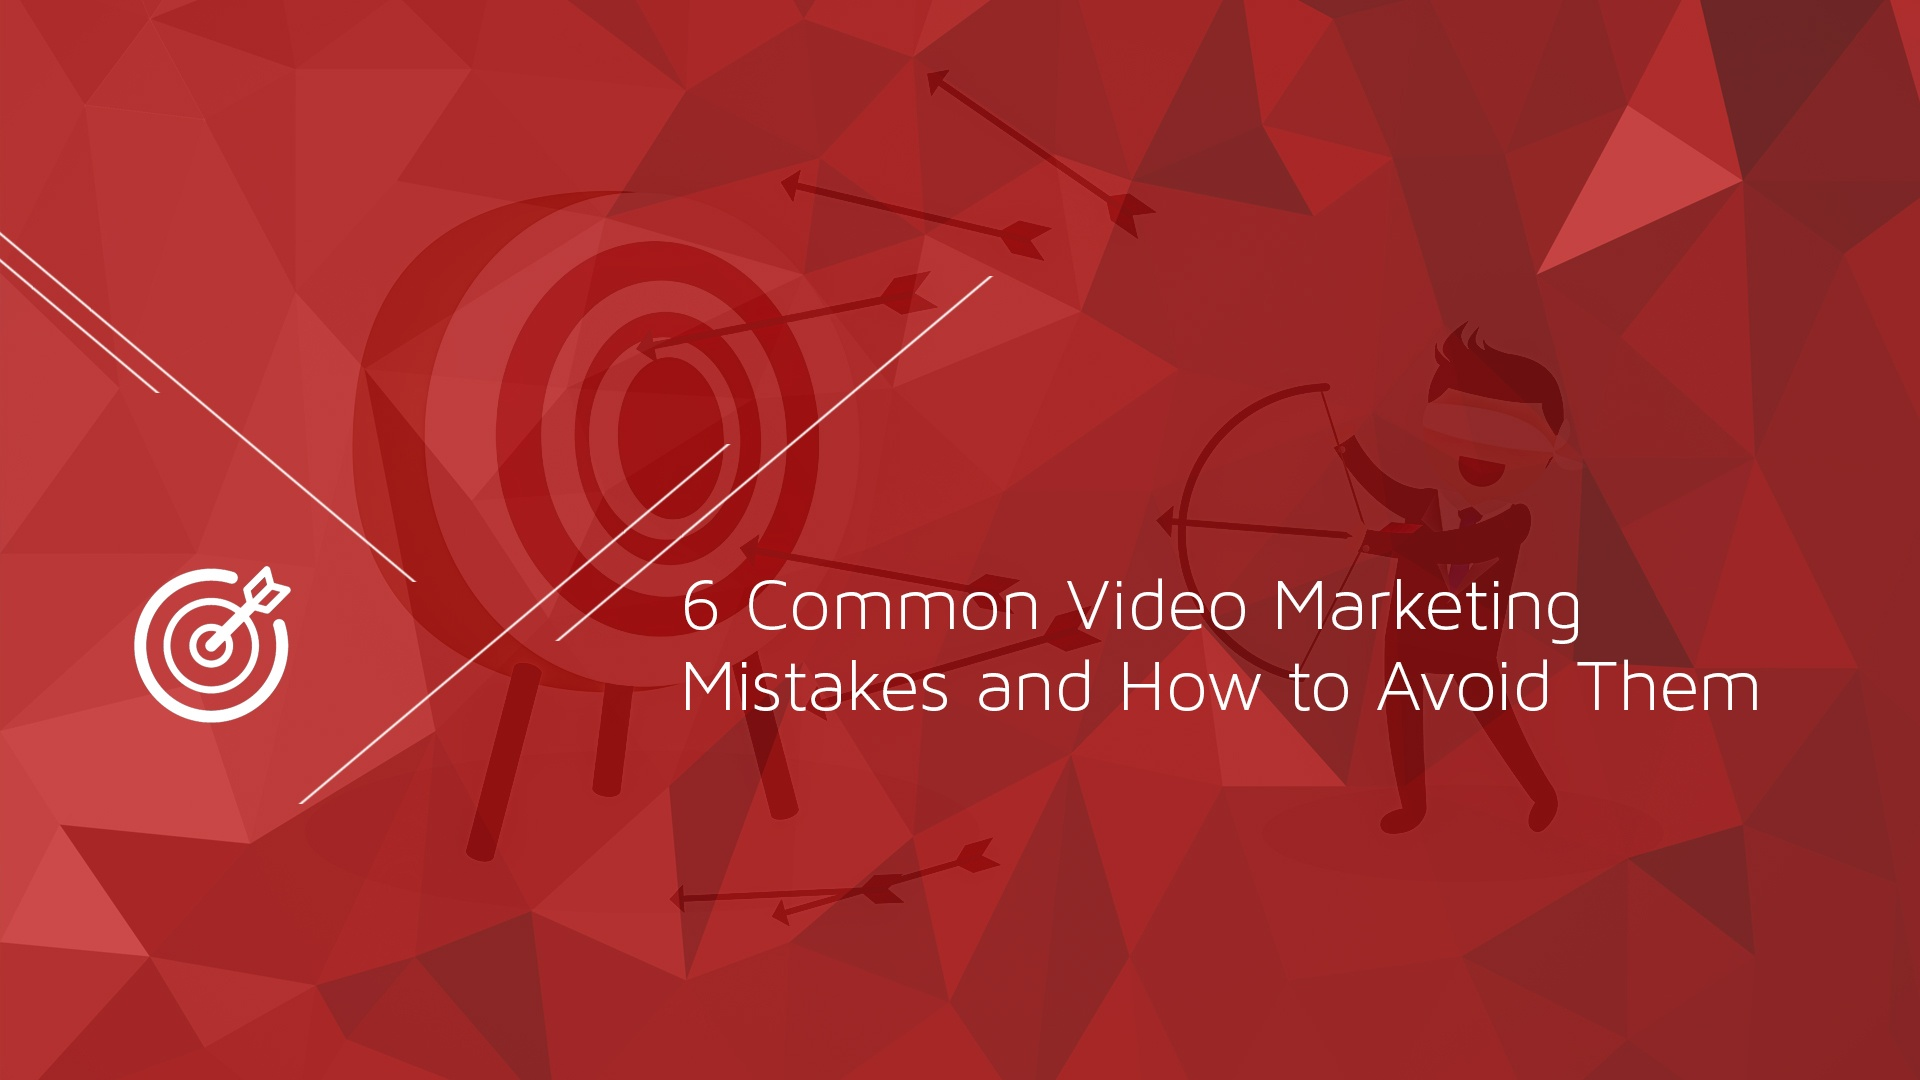 6 Common Video Marketing Mistakes and How to Avoid Them.jpg